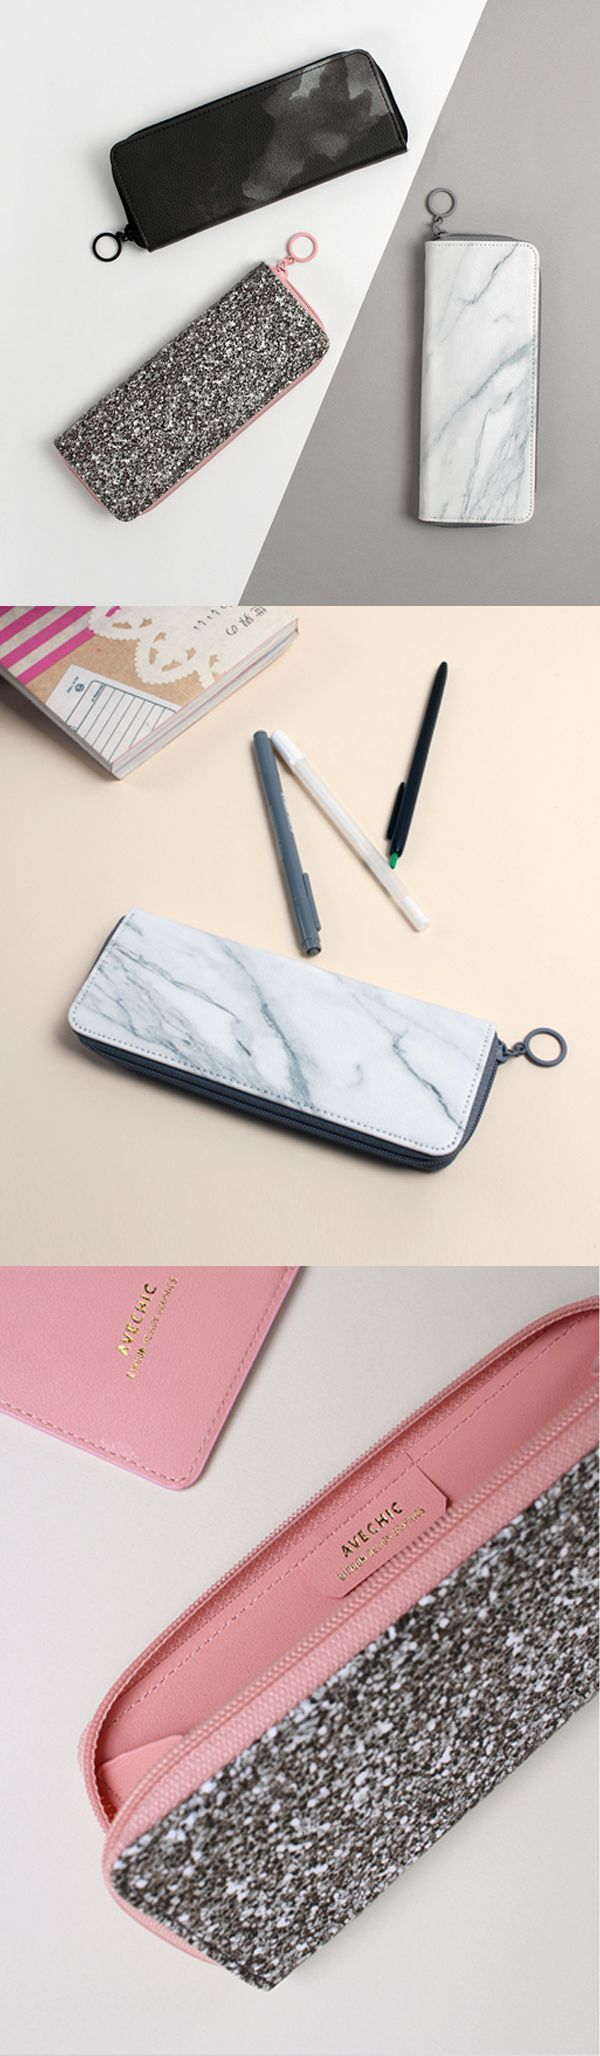 Definitely the classiest pen case around! Ink, Glitter, Marble...which will you choose? ^.~*